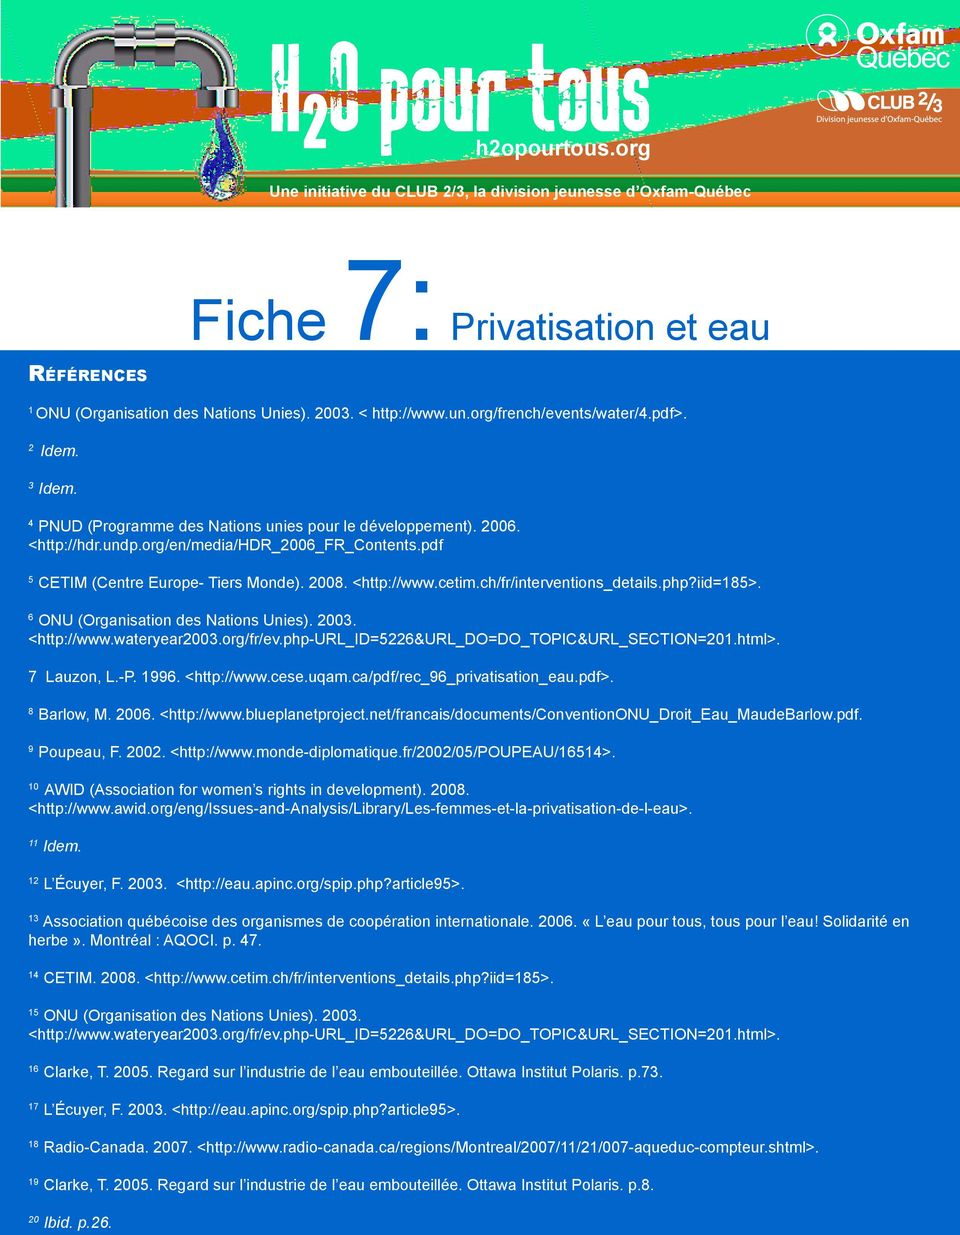 org/fr/ev.php-url_id=5226&url_do=do_topic&url_section=201.html>. 7 Lauzon, L.-P. 1996. <http://www.cese.uqam.ca/pdf/rec_96_privatisation_eau.pdf>. 8 Barlow, M. 2006. <http://www.blueplanetproject.